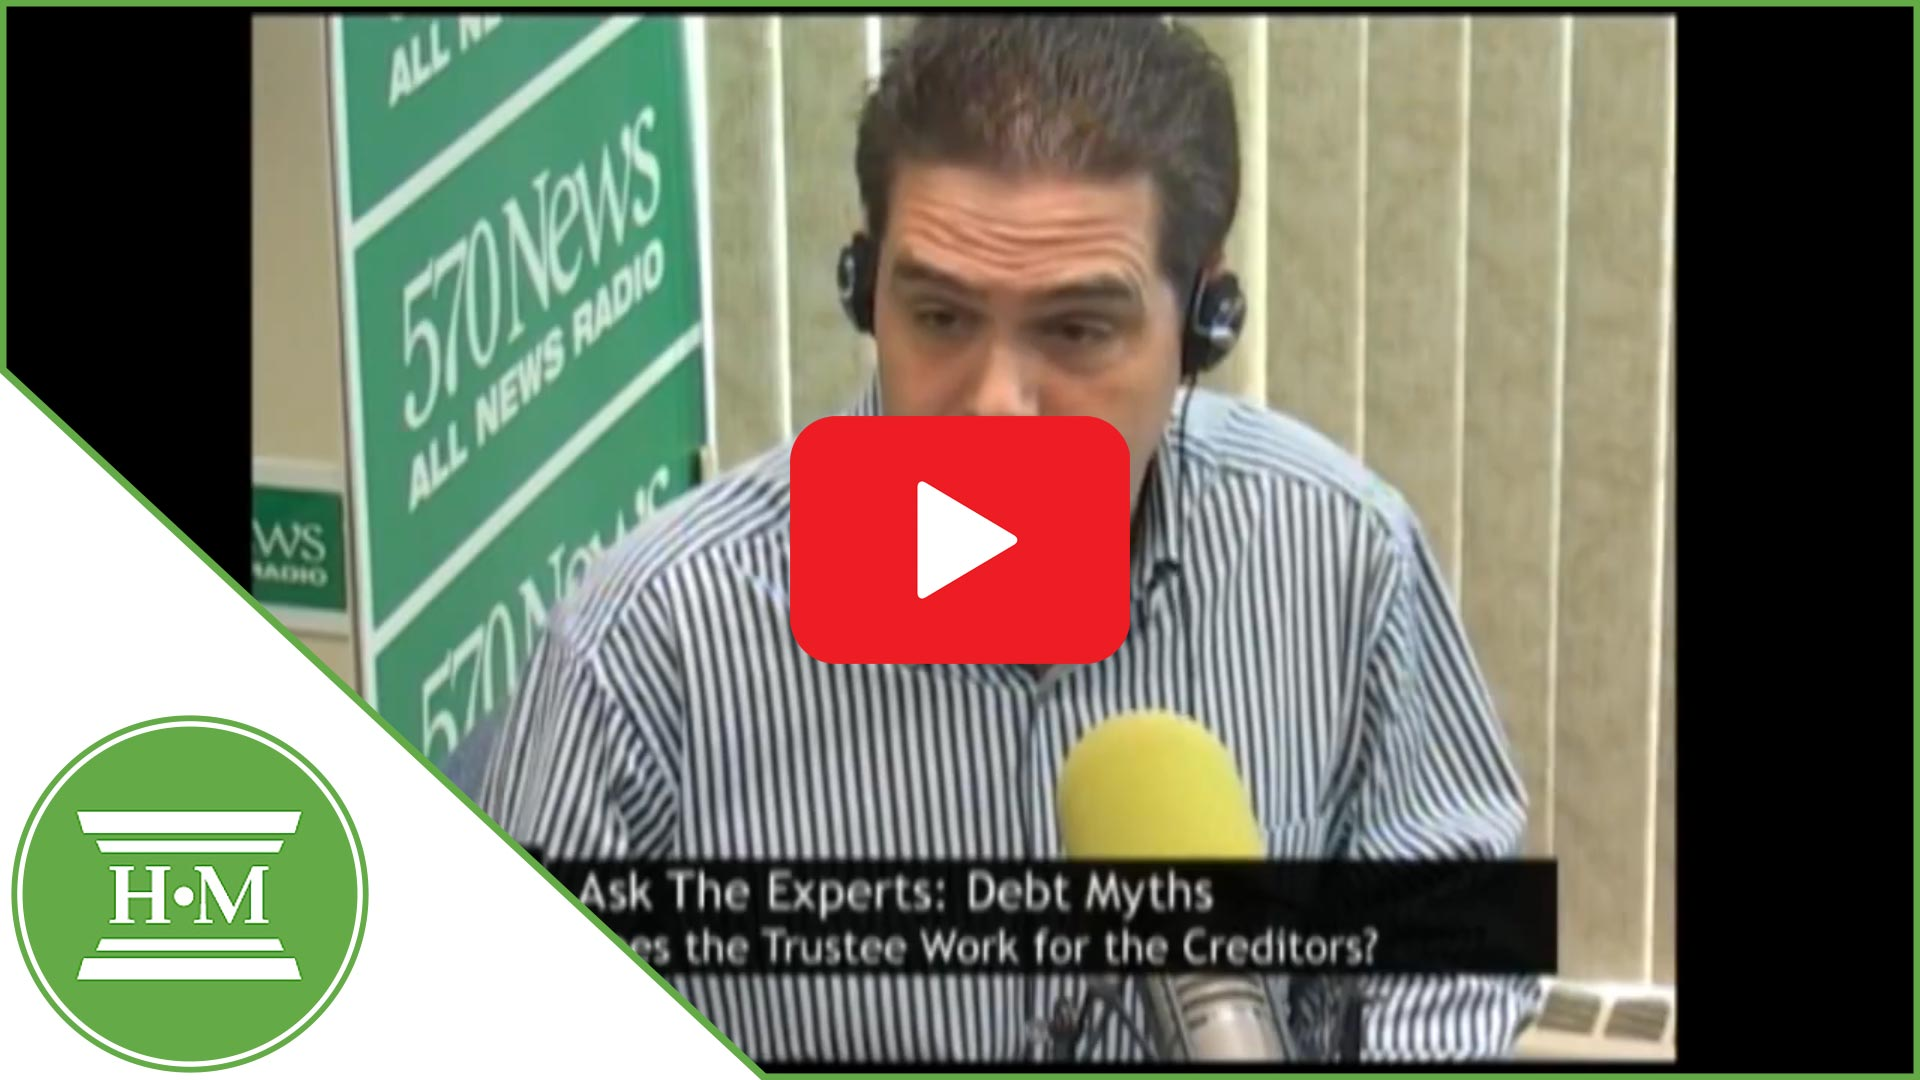 Do bankrutpcy trustees work for creditors